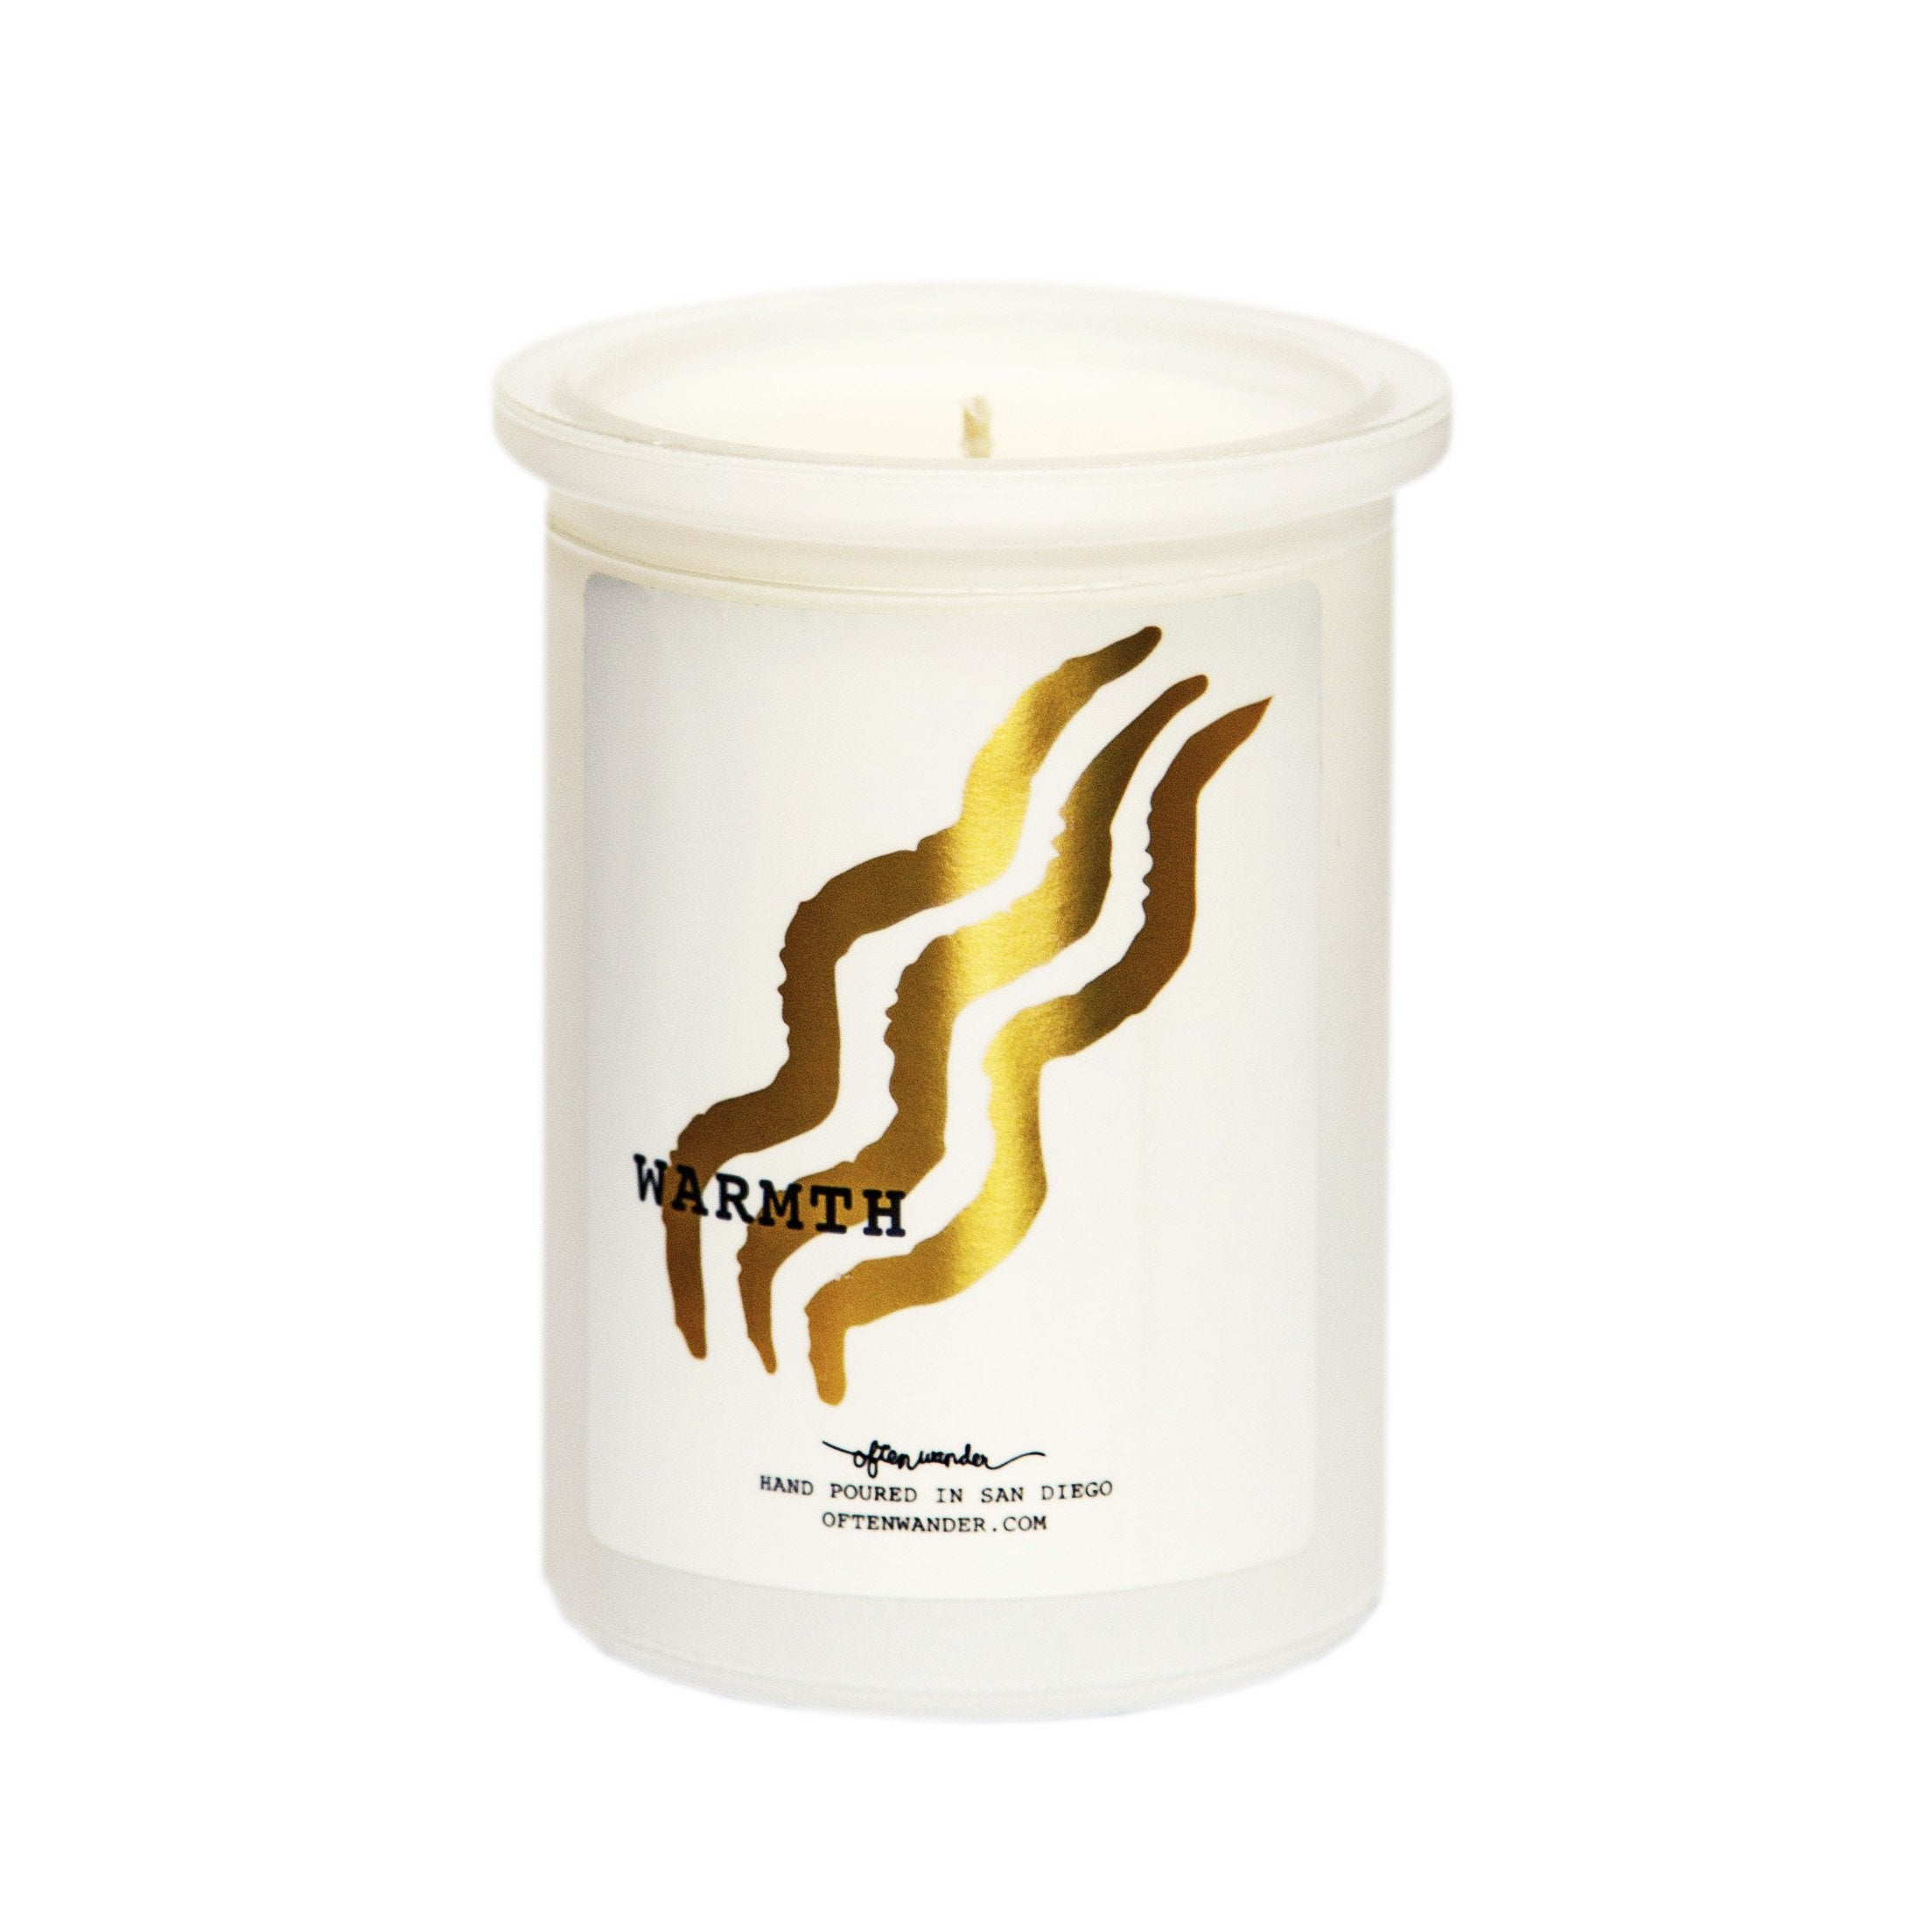 Sale! Warmth (Smoky) — Holiday Candle